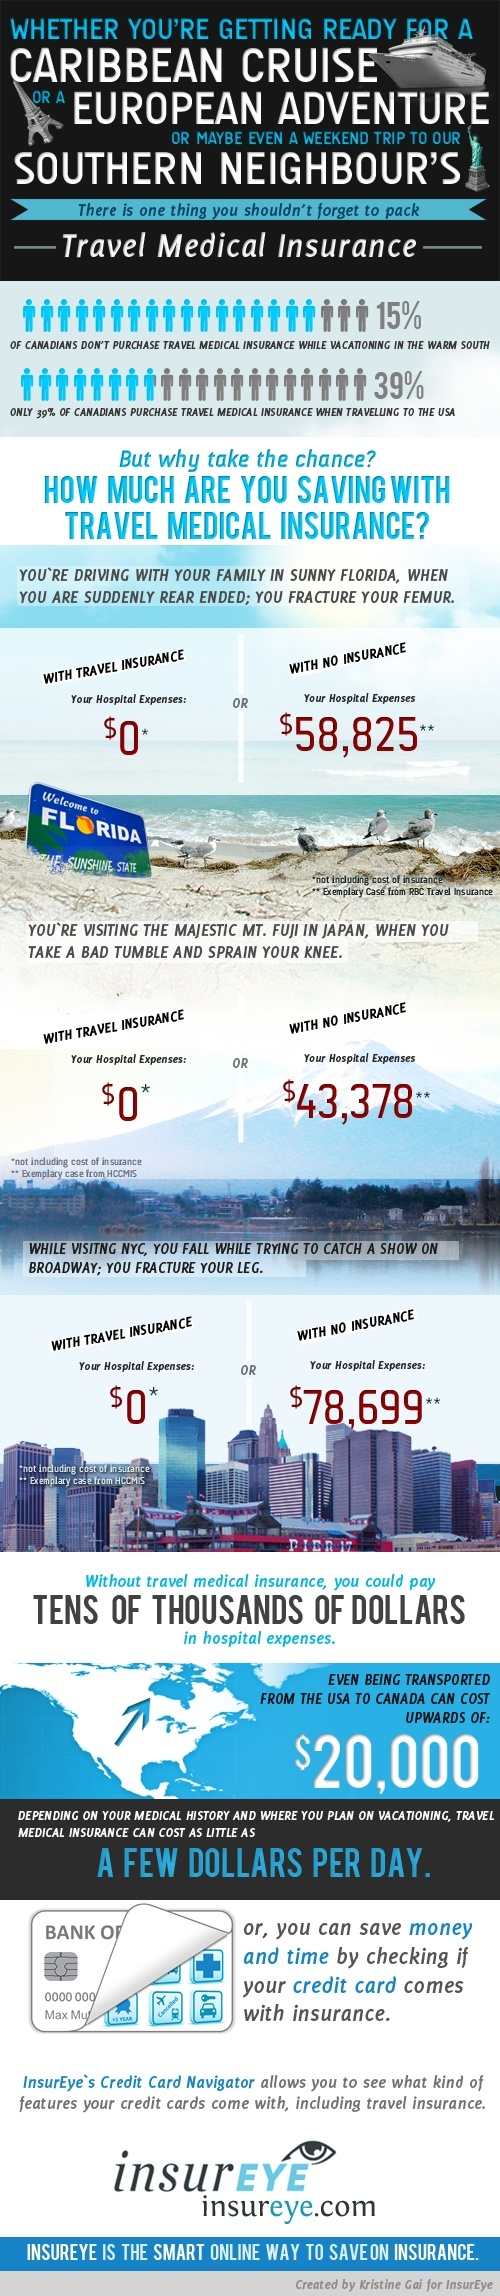 Infographic Travel Medical Insurance Costs